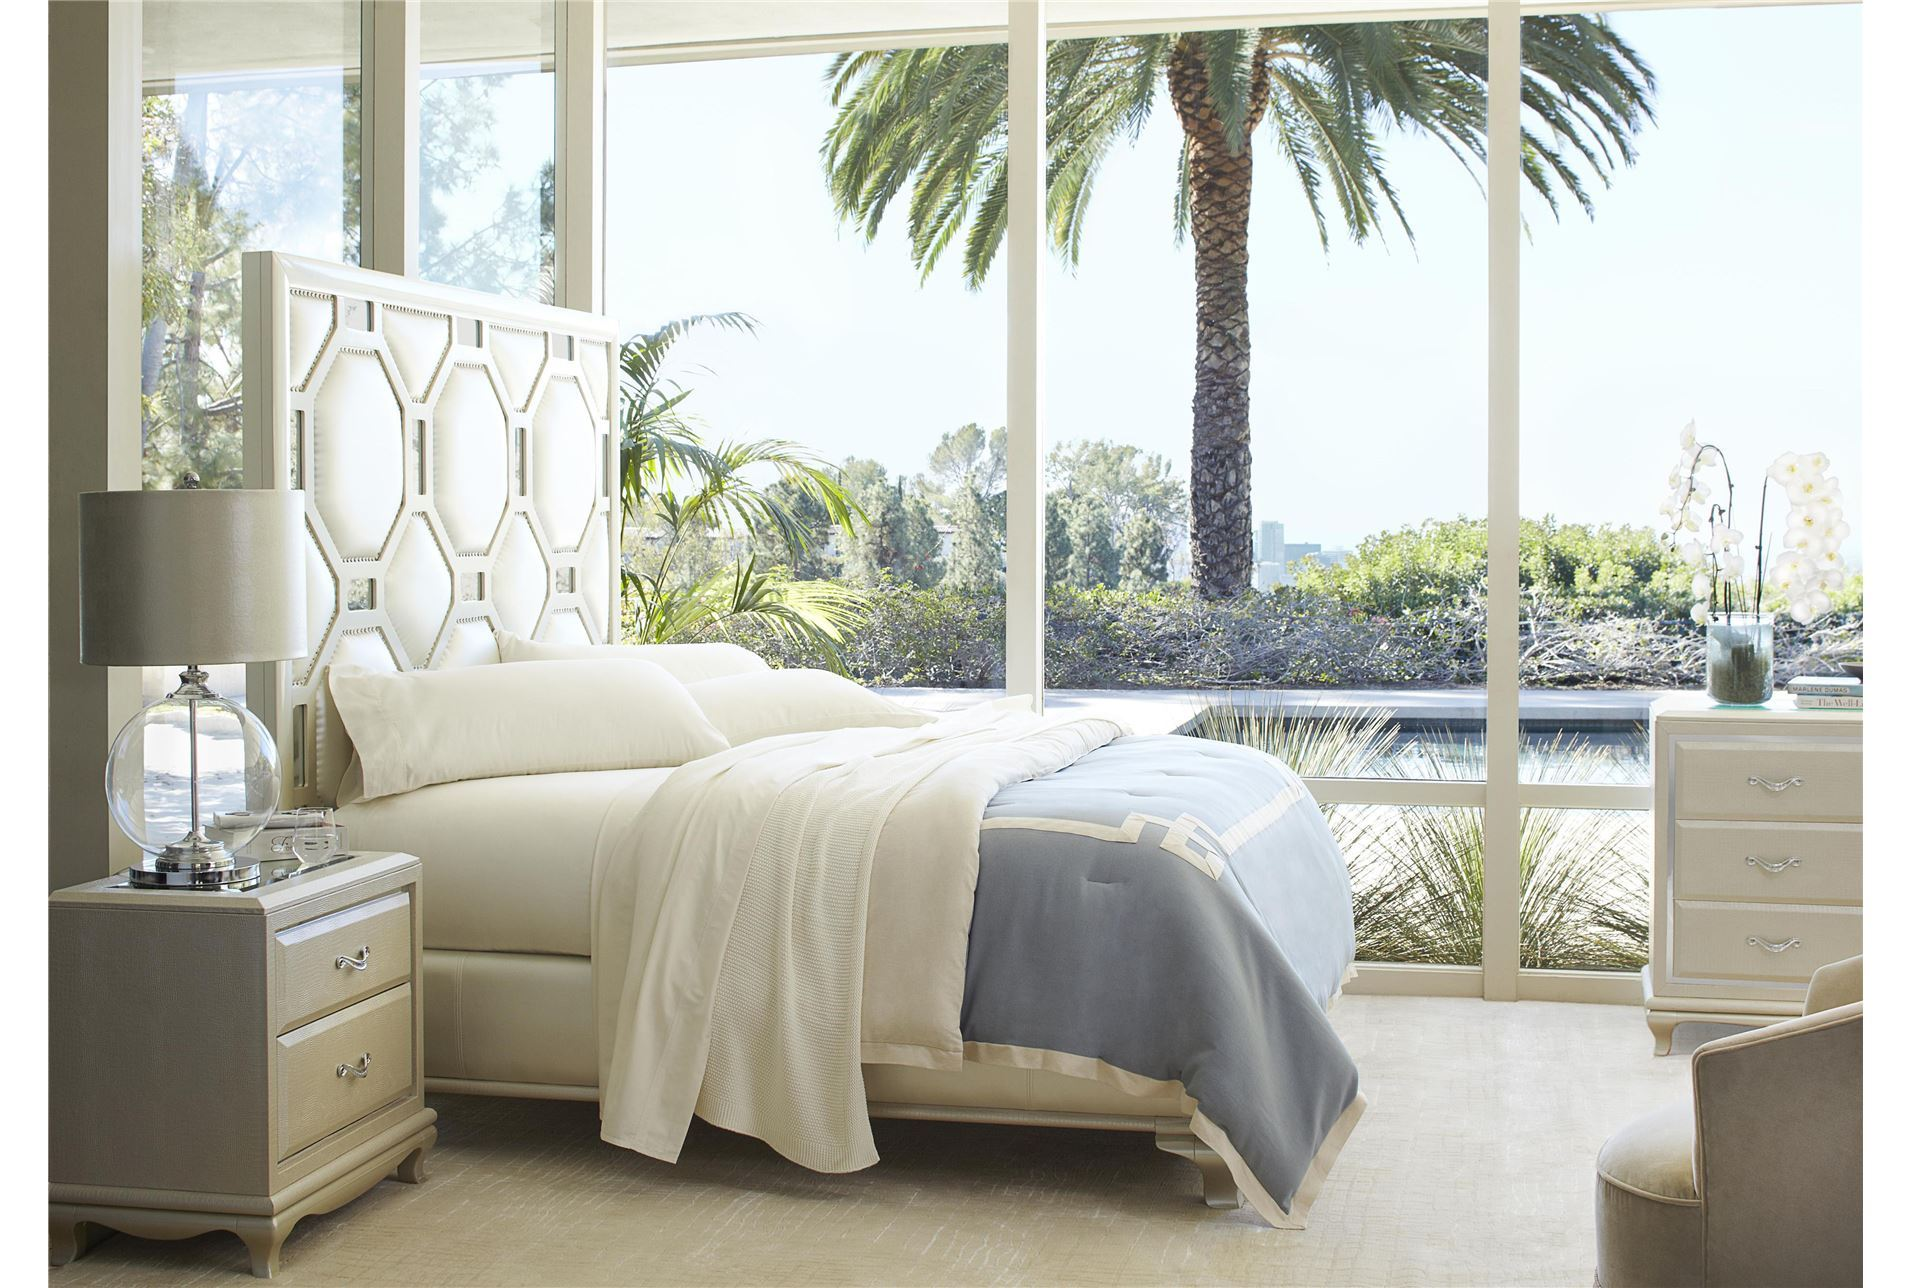 After Eight Pearl Queen Size White Bed. 7 Beautiful White Queen Size Beds From US Stores   Cute Furniture